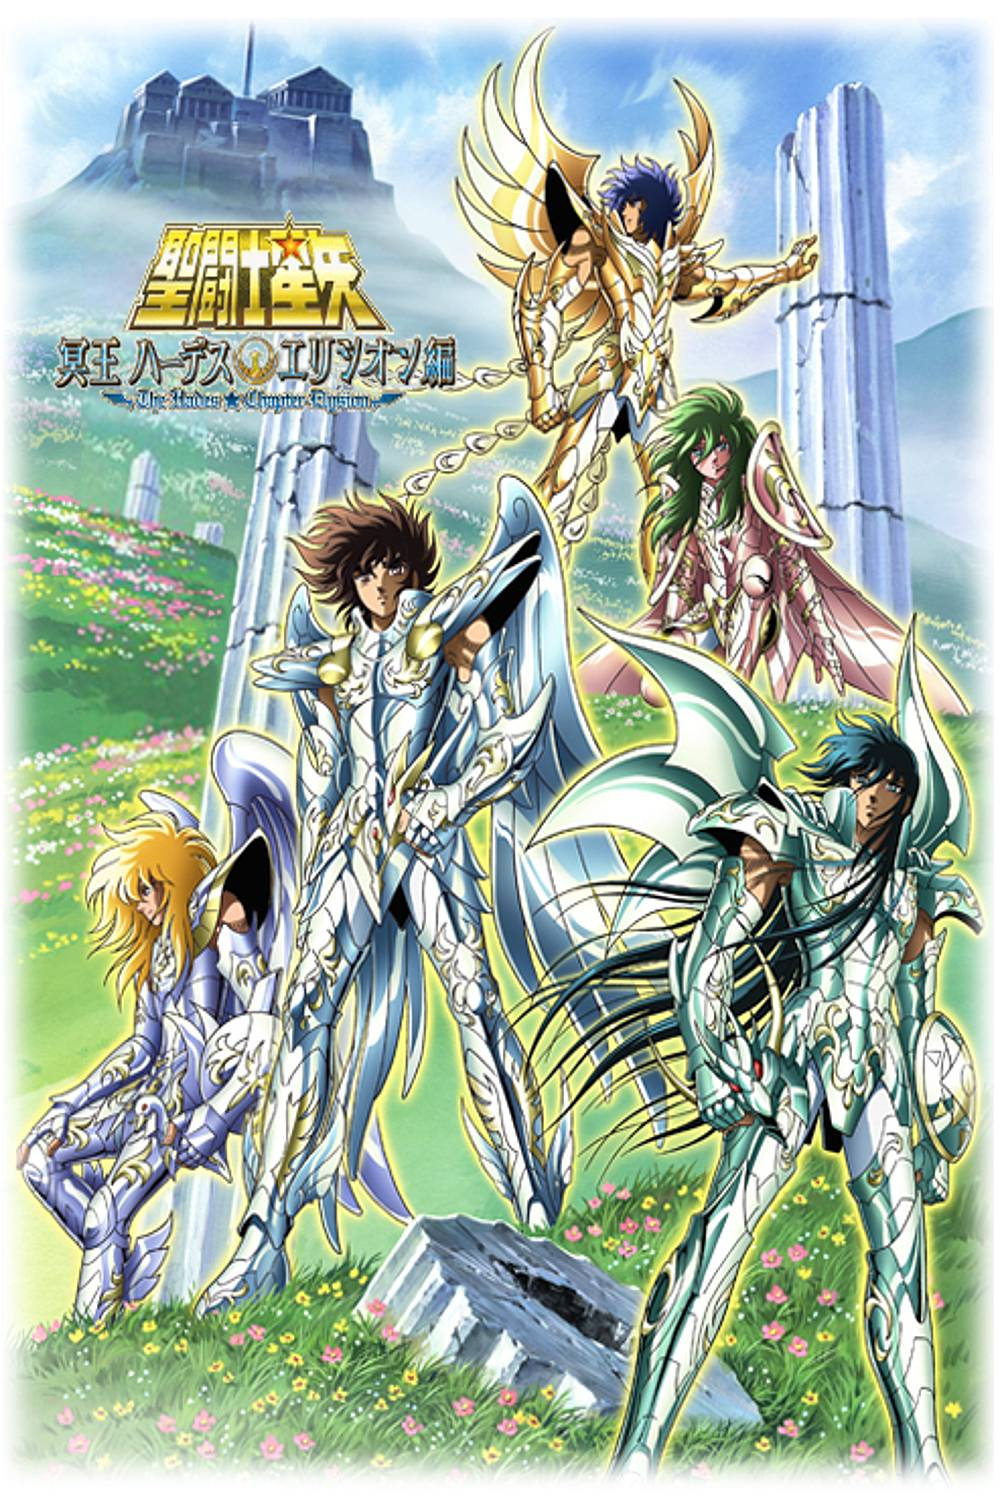 Saint Seiya: The Hades Chapter - Elysion